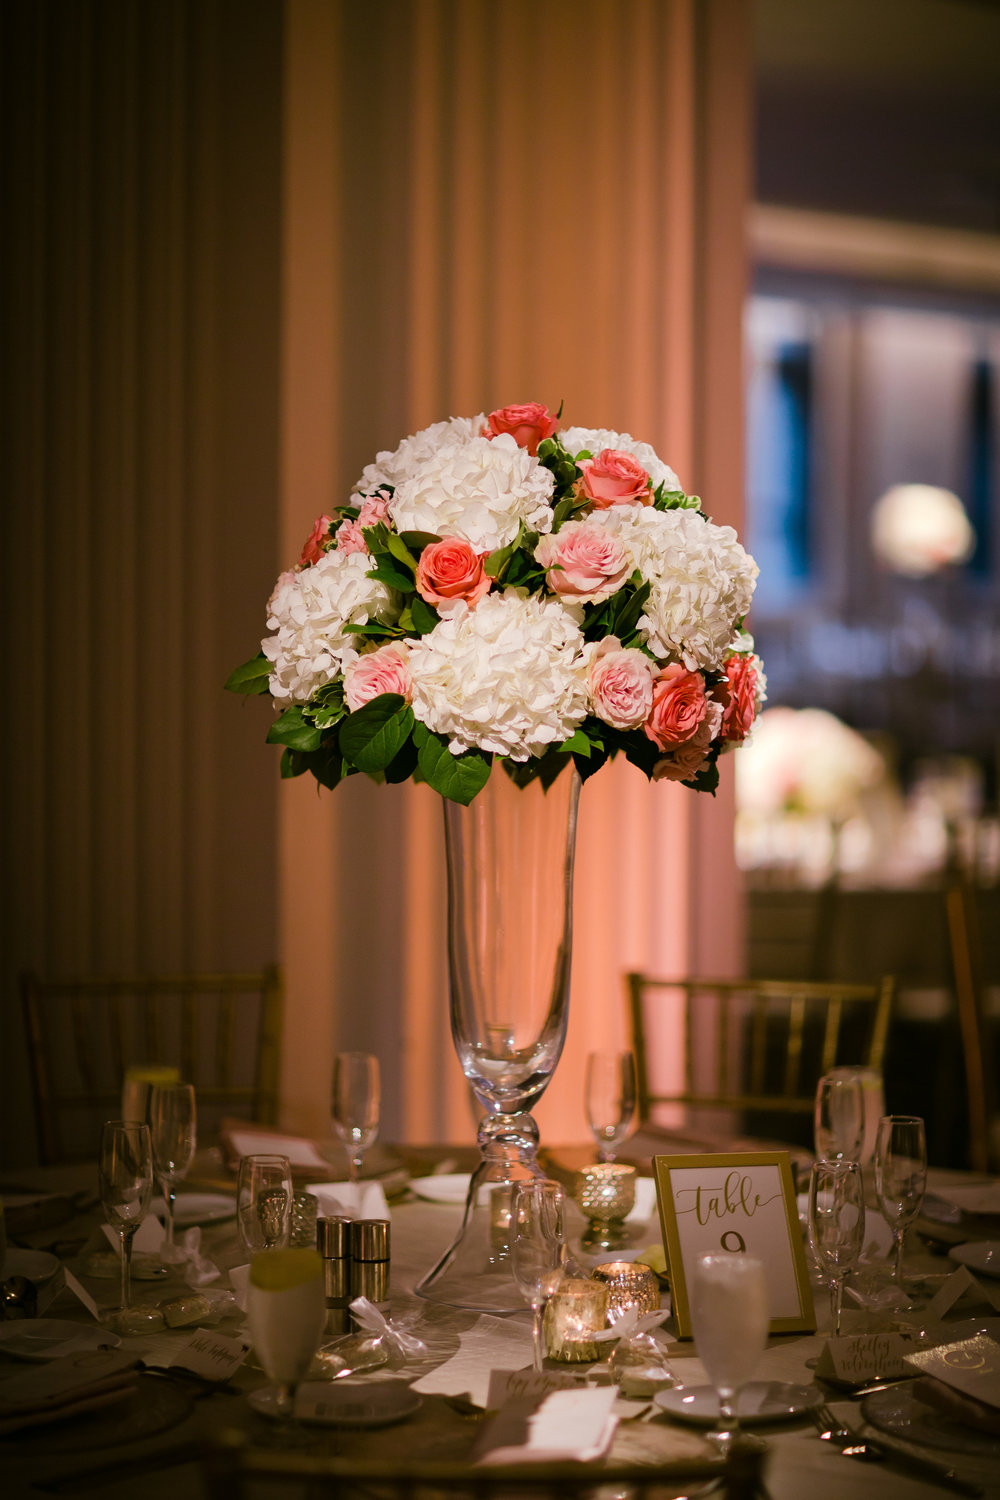 Burnham Hall wedding reception with blush and cream palette